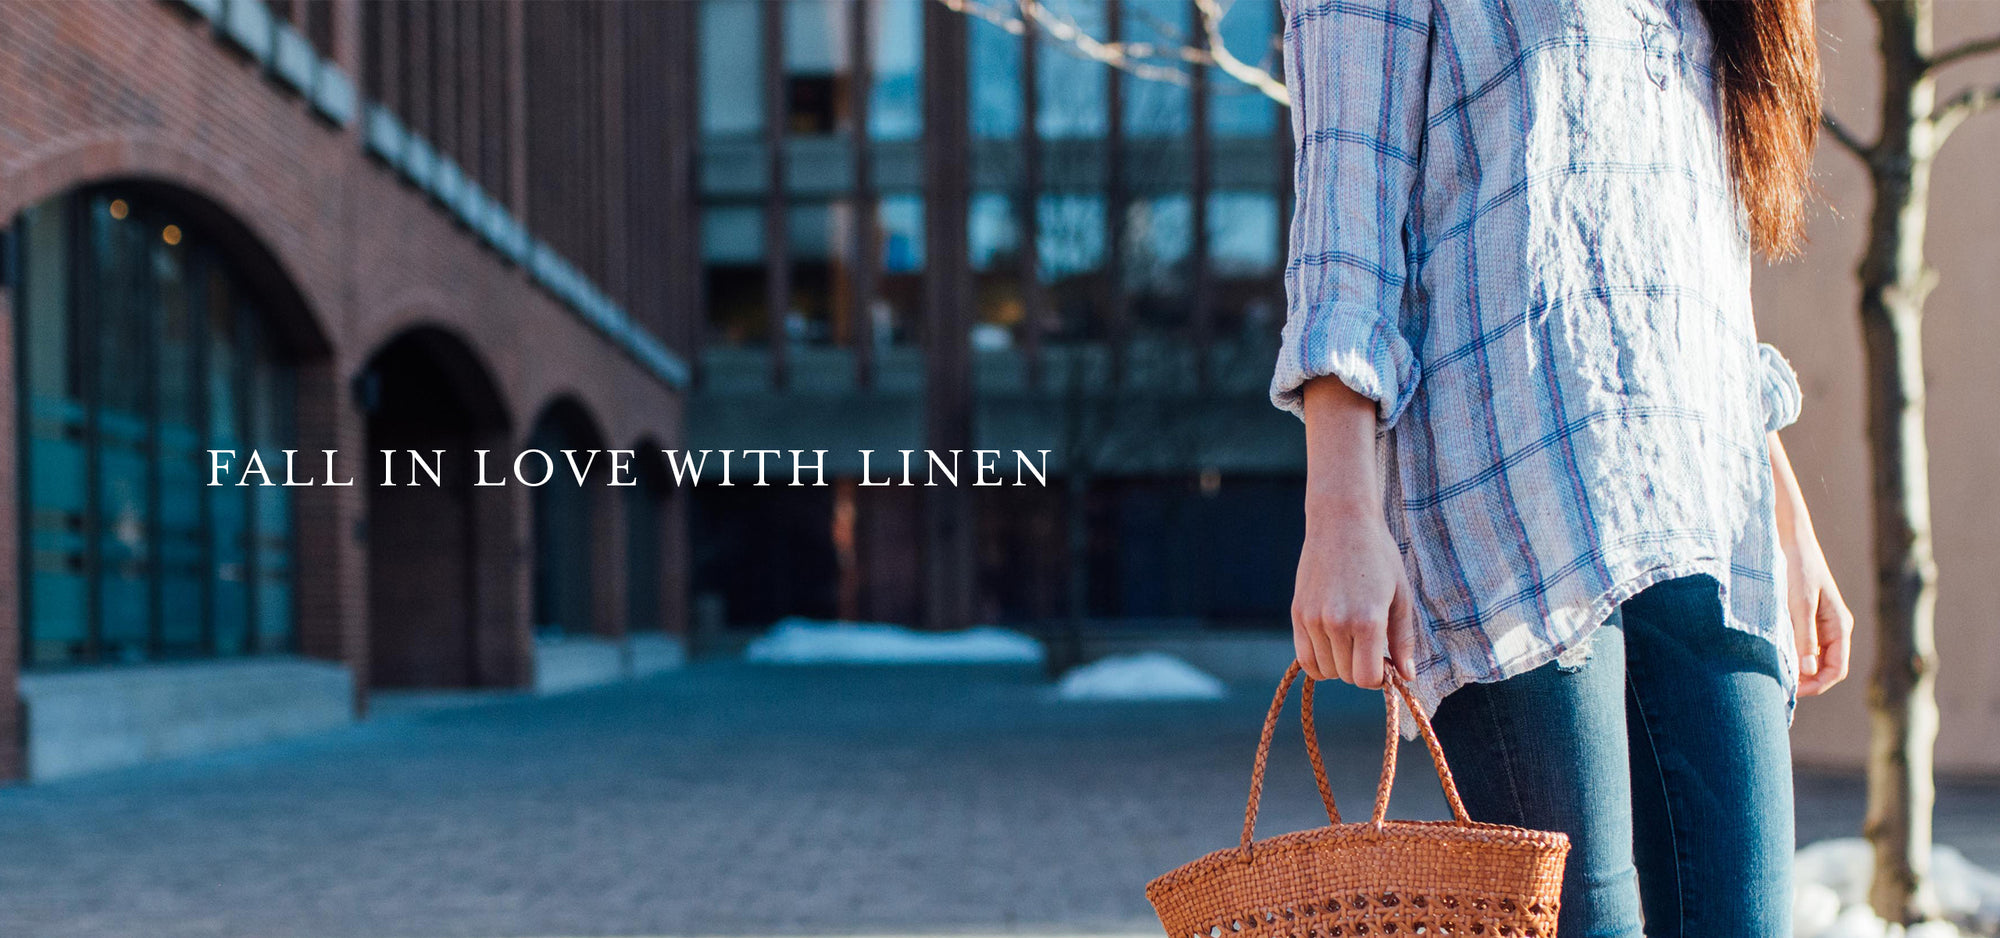 Fall in Love with Linen from CP Shades